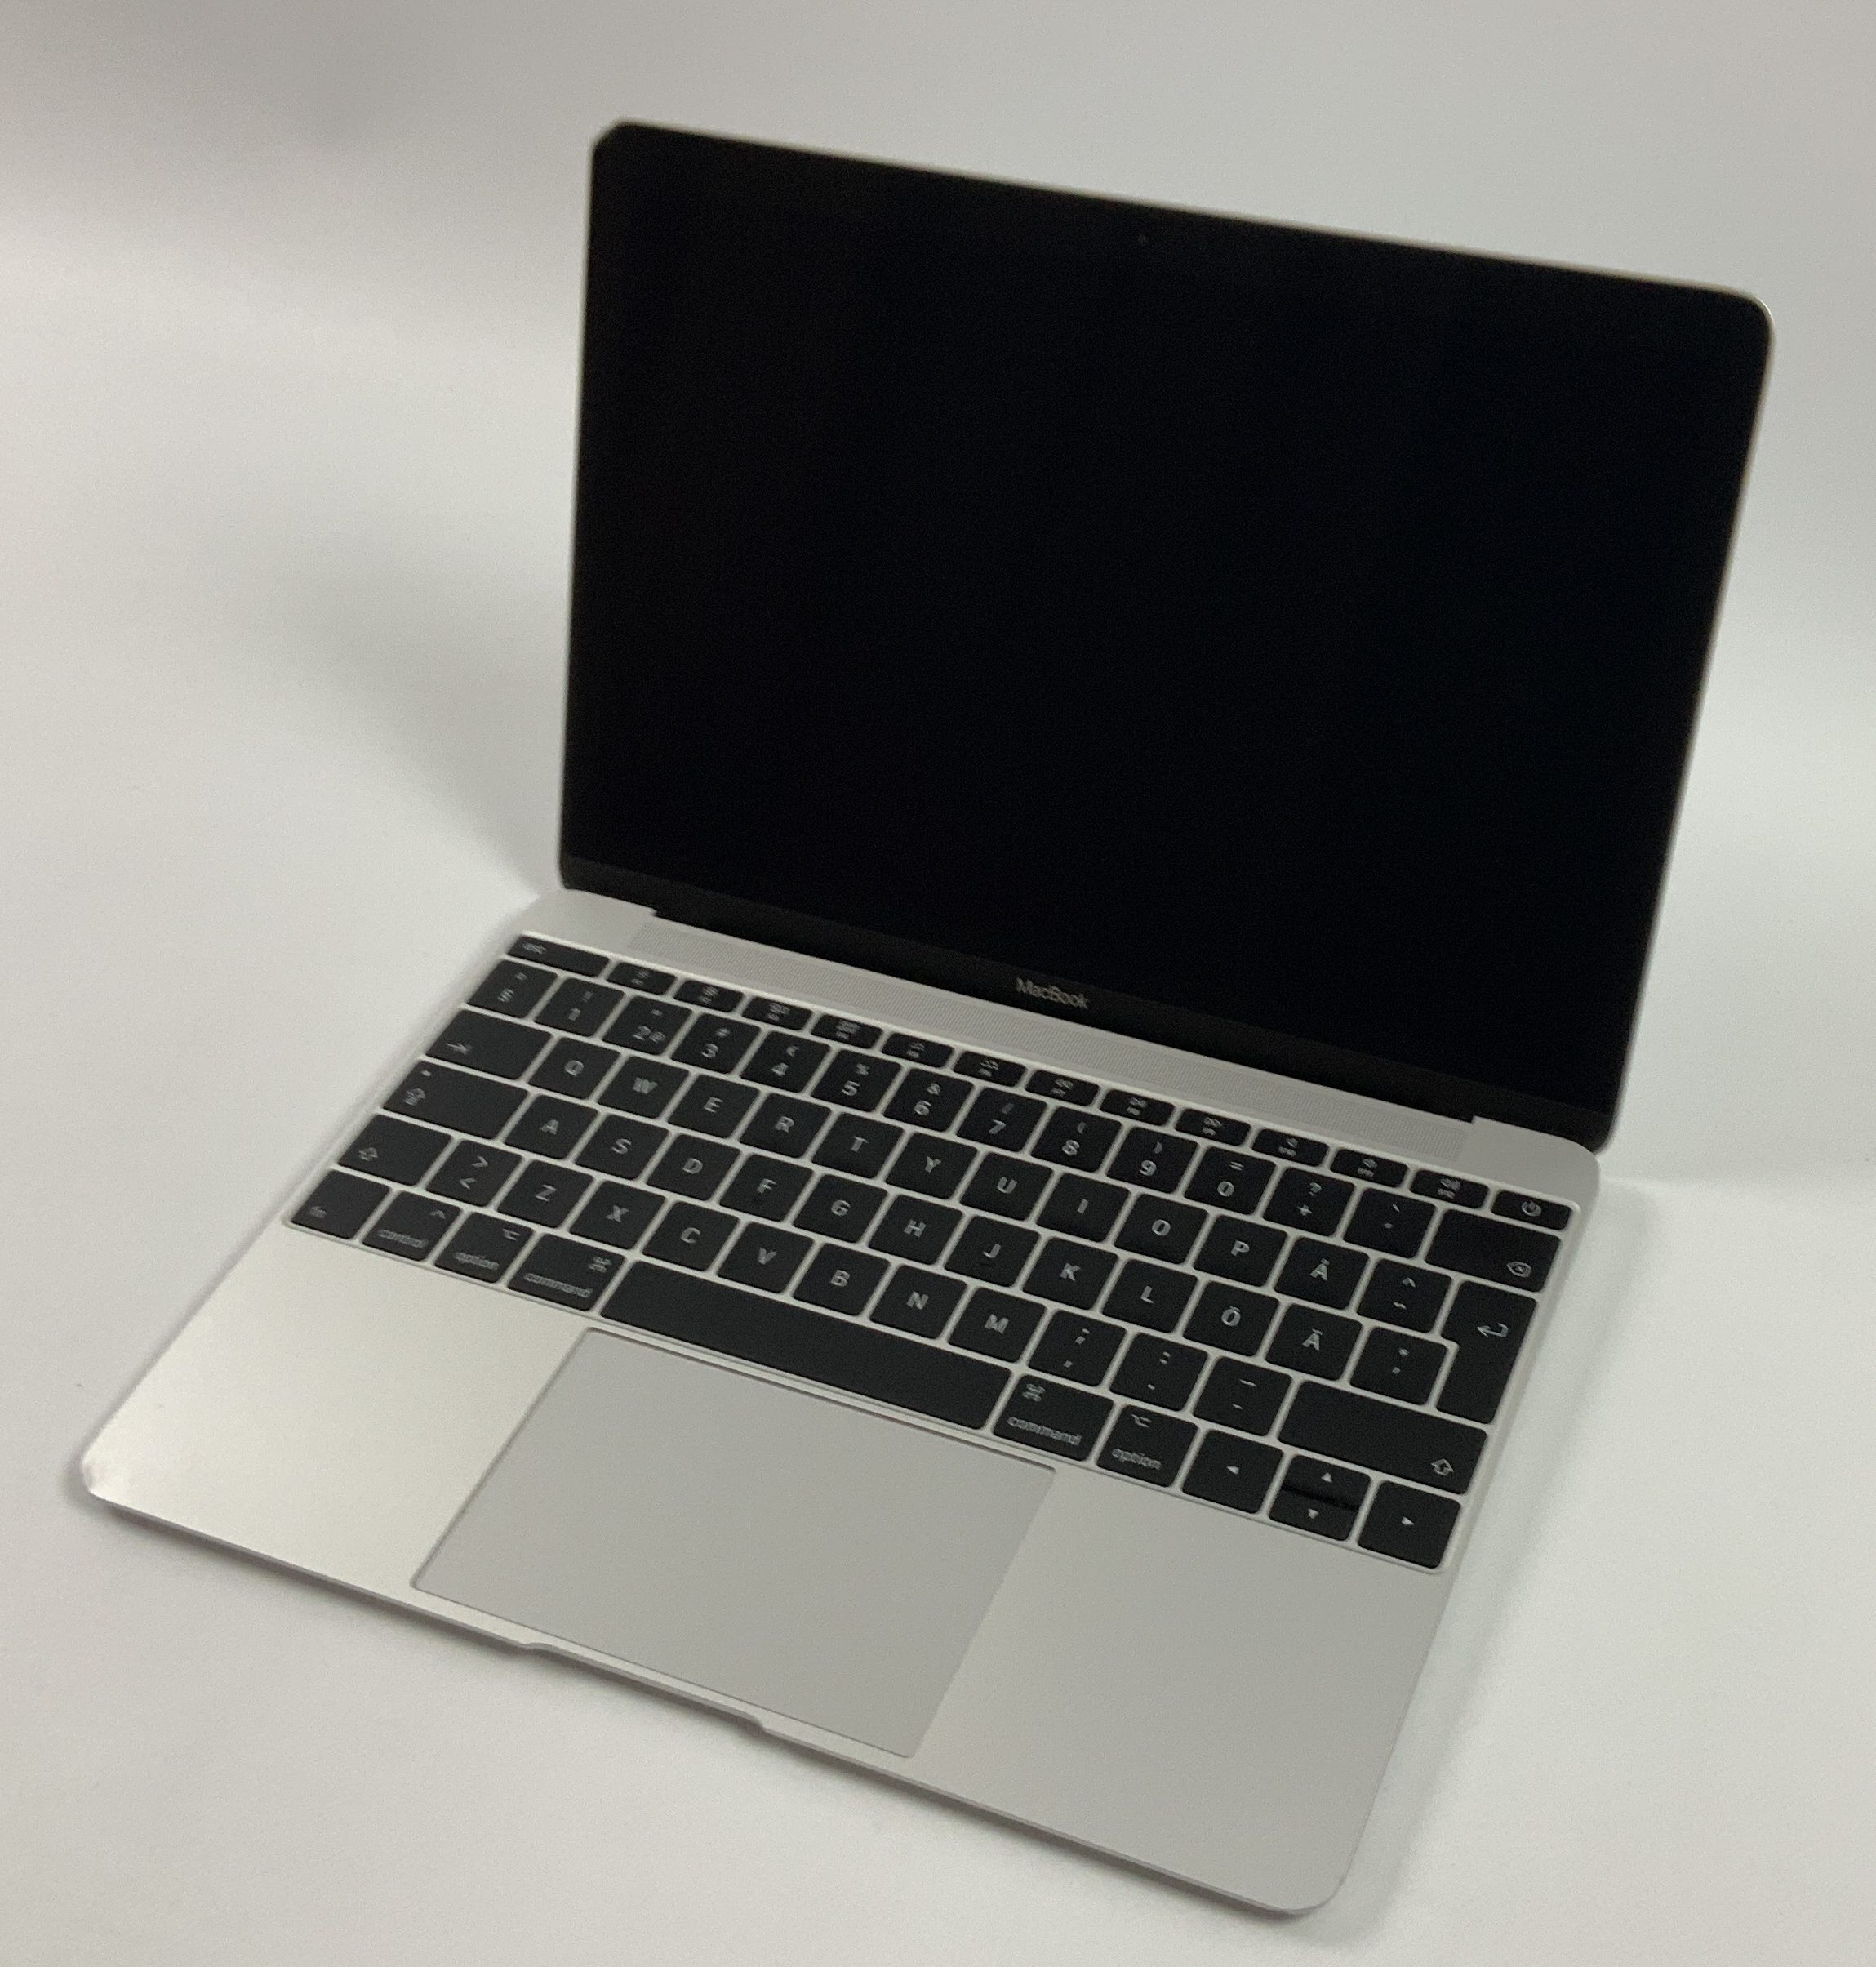 "MacBook 12"" Mid 2017 (Intel Core i5 1.3 GHz 8 GB RAM 512 GB SSD), Silver, Intel Core i5 1.3 GHz, 8 GB RAM, 512 GB SSD, Kuva 1"